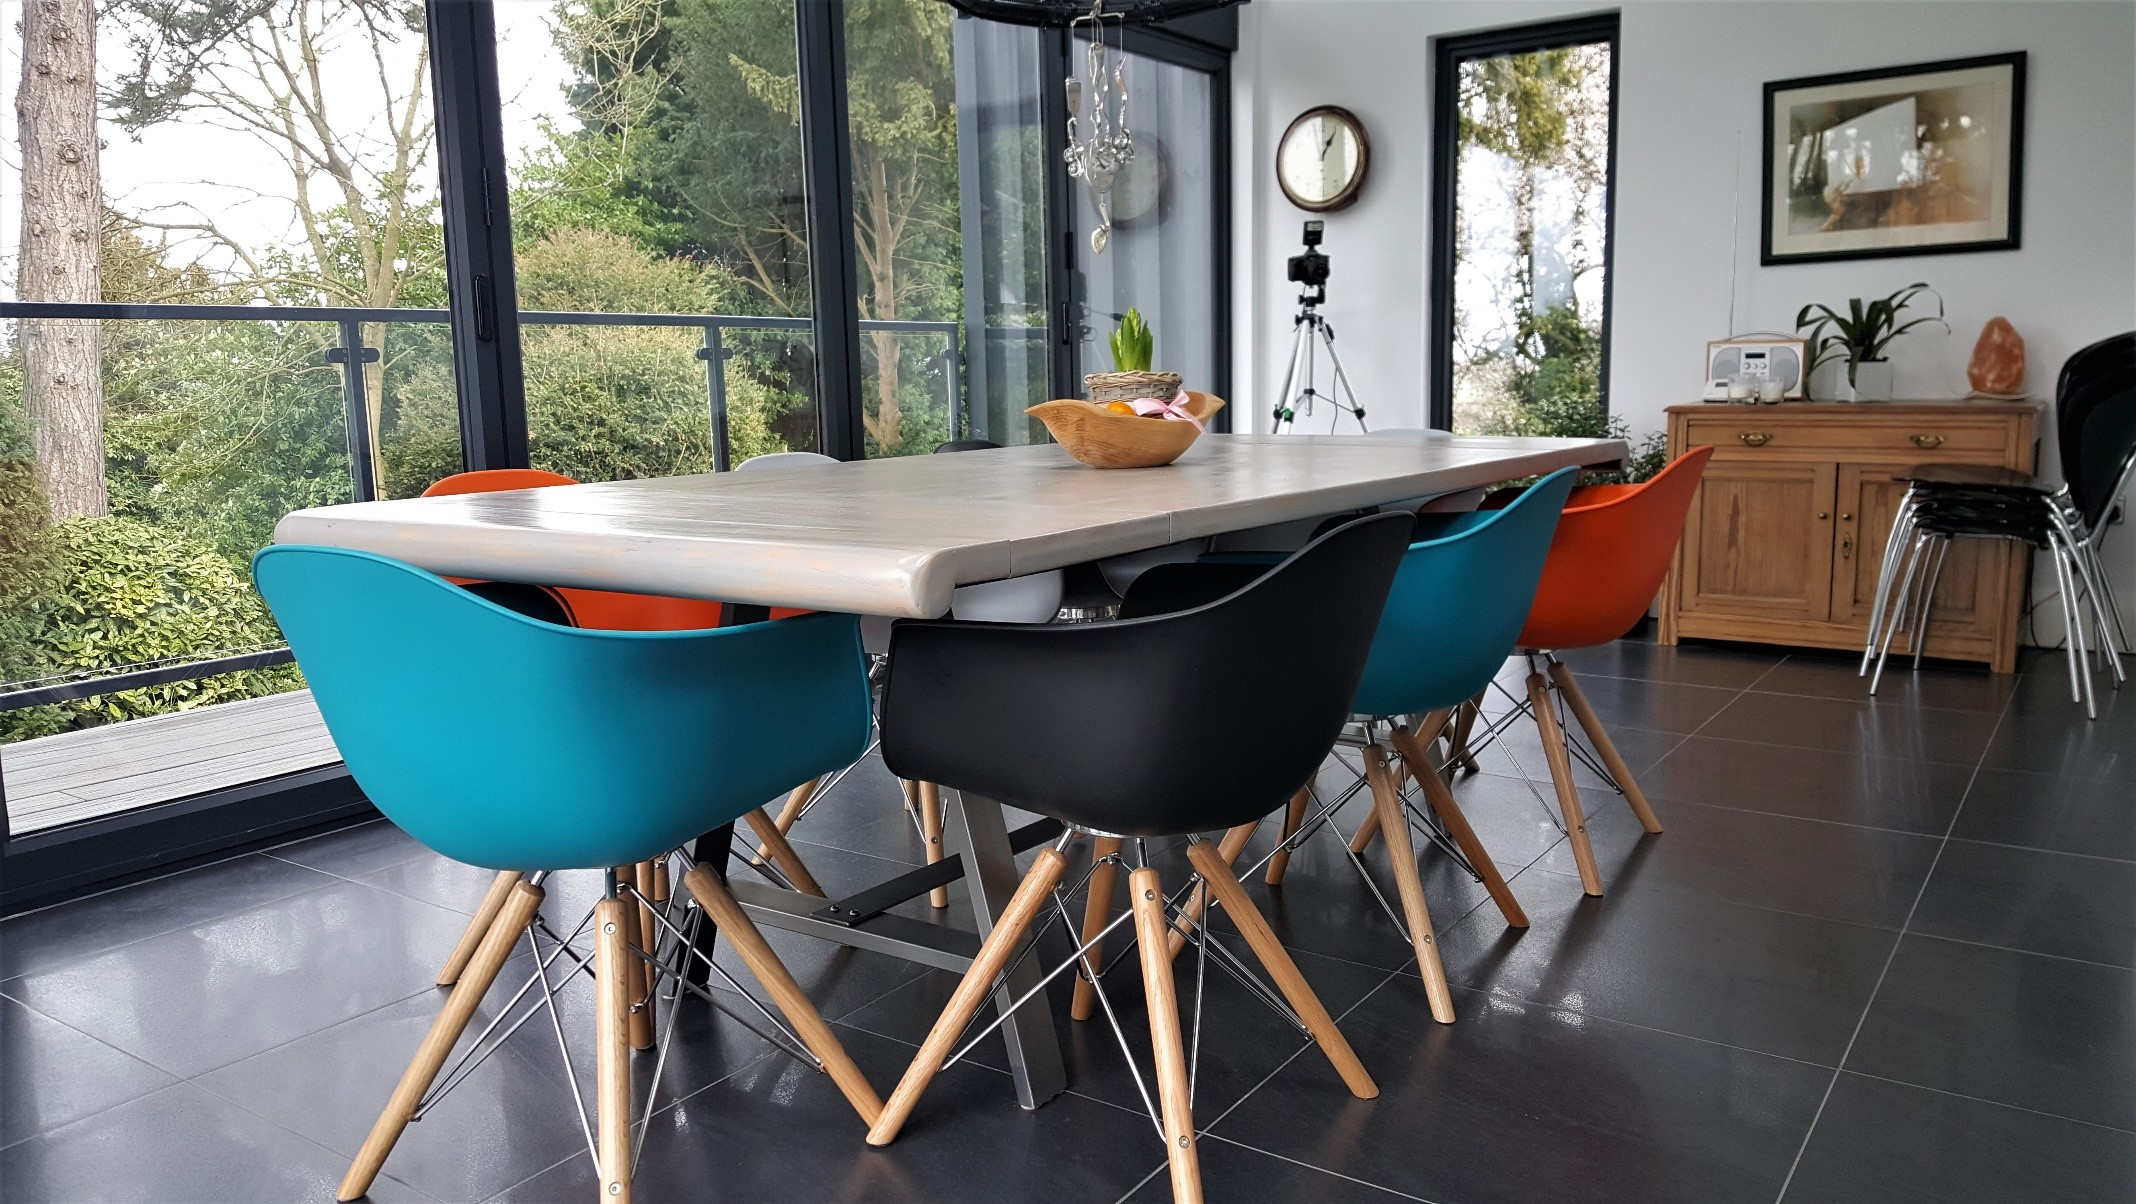 Try Adding Two Diffe Coloured Chairs To Each End Of The Table Or A Random Odd One Out It Shouldn T Work But Does